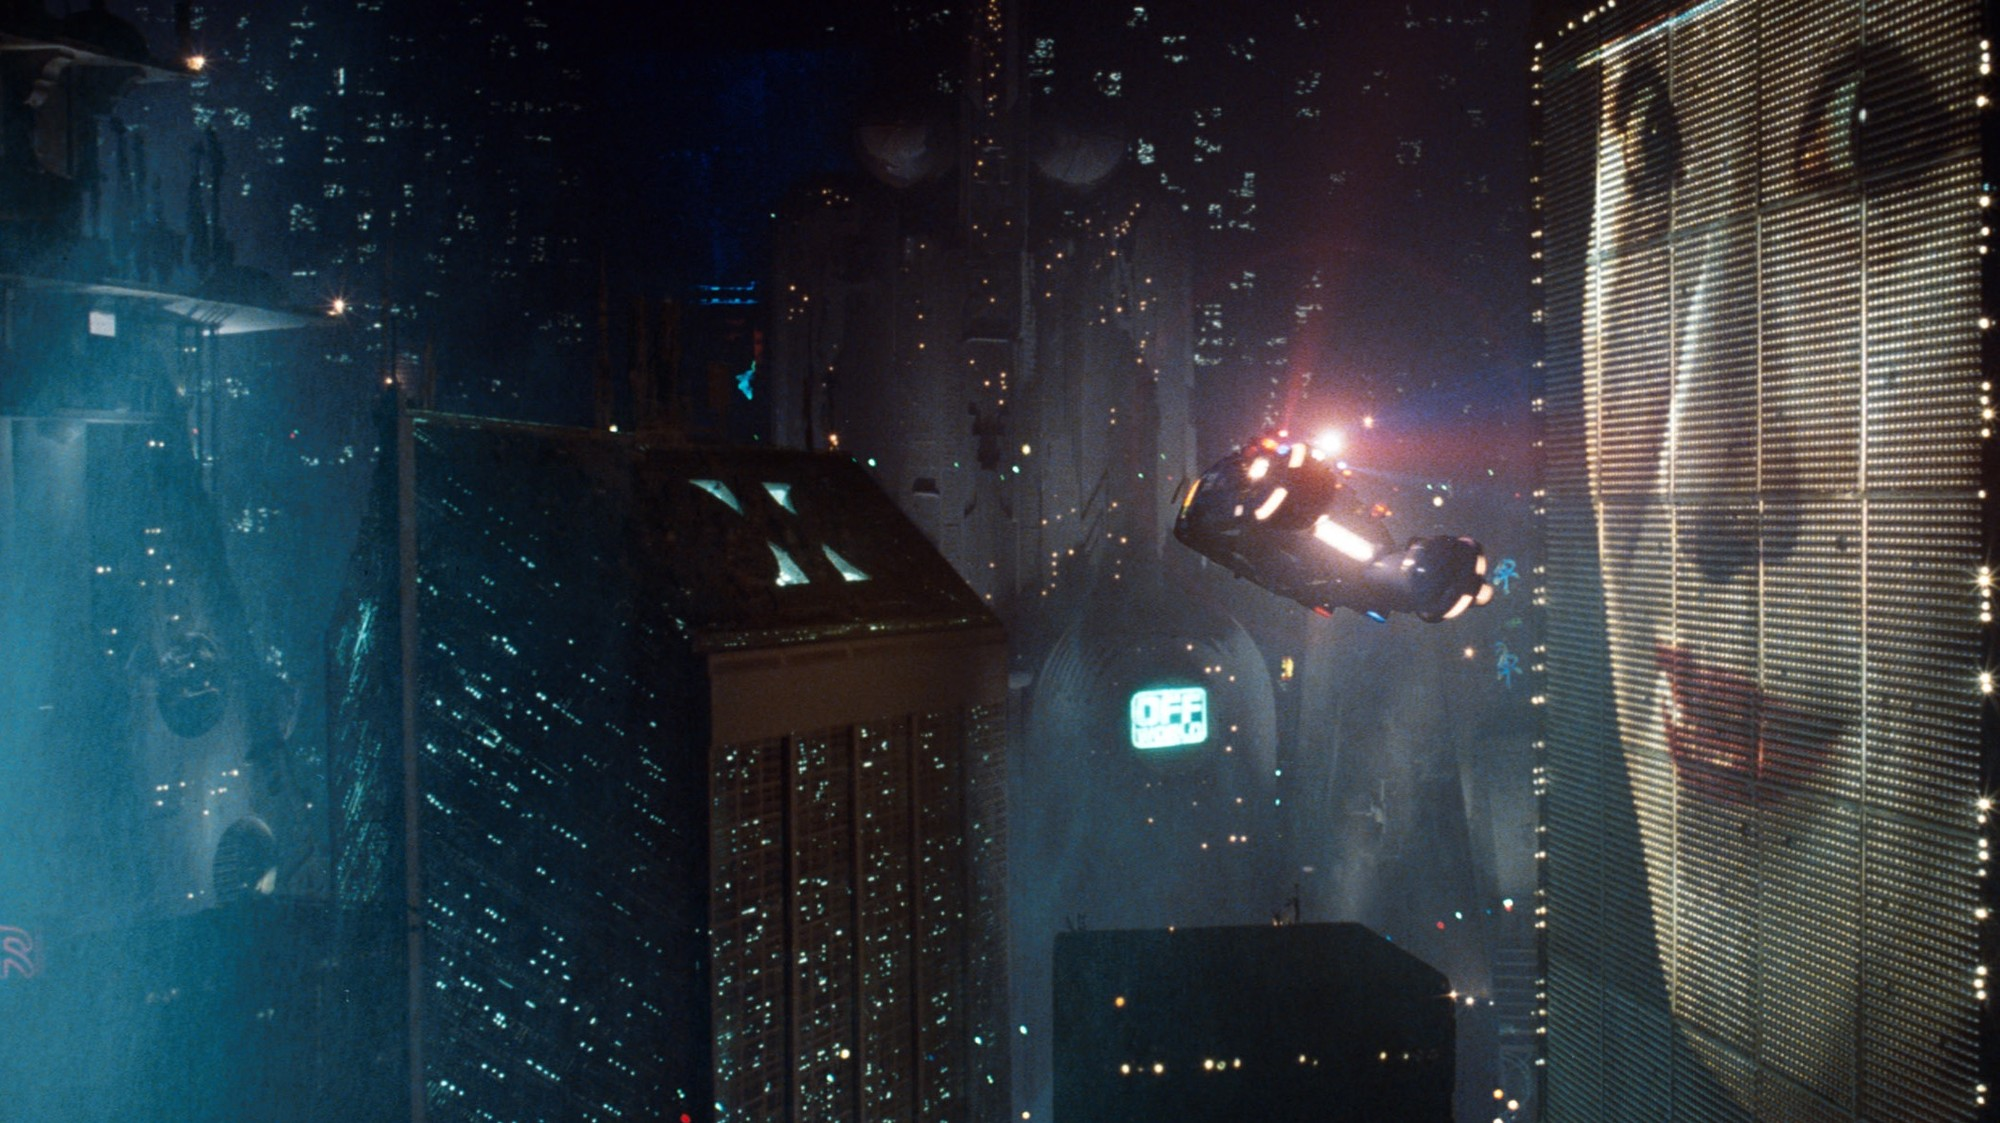 Cyberpunk Cities Fetishize Asian Culture But Have No Asians